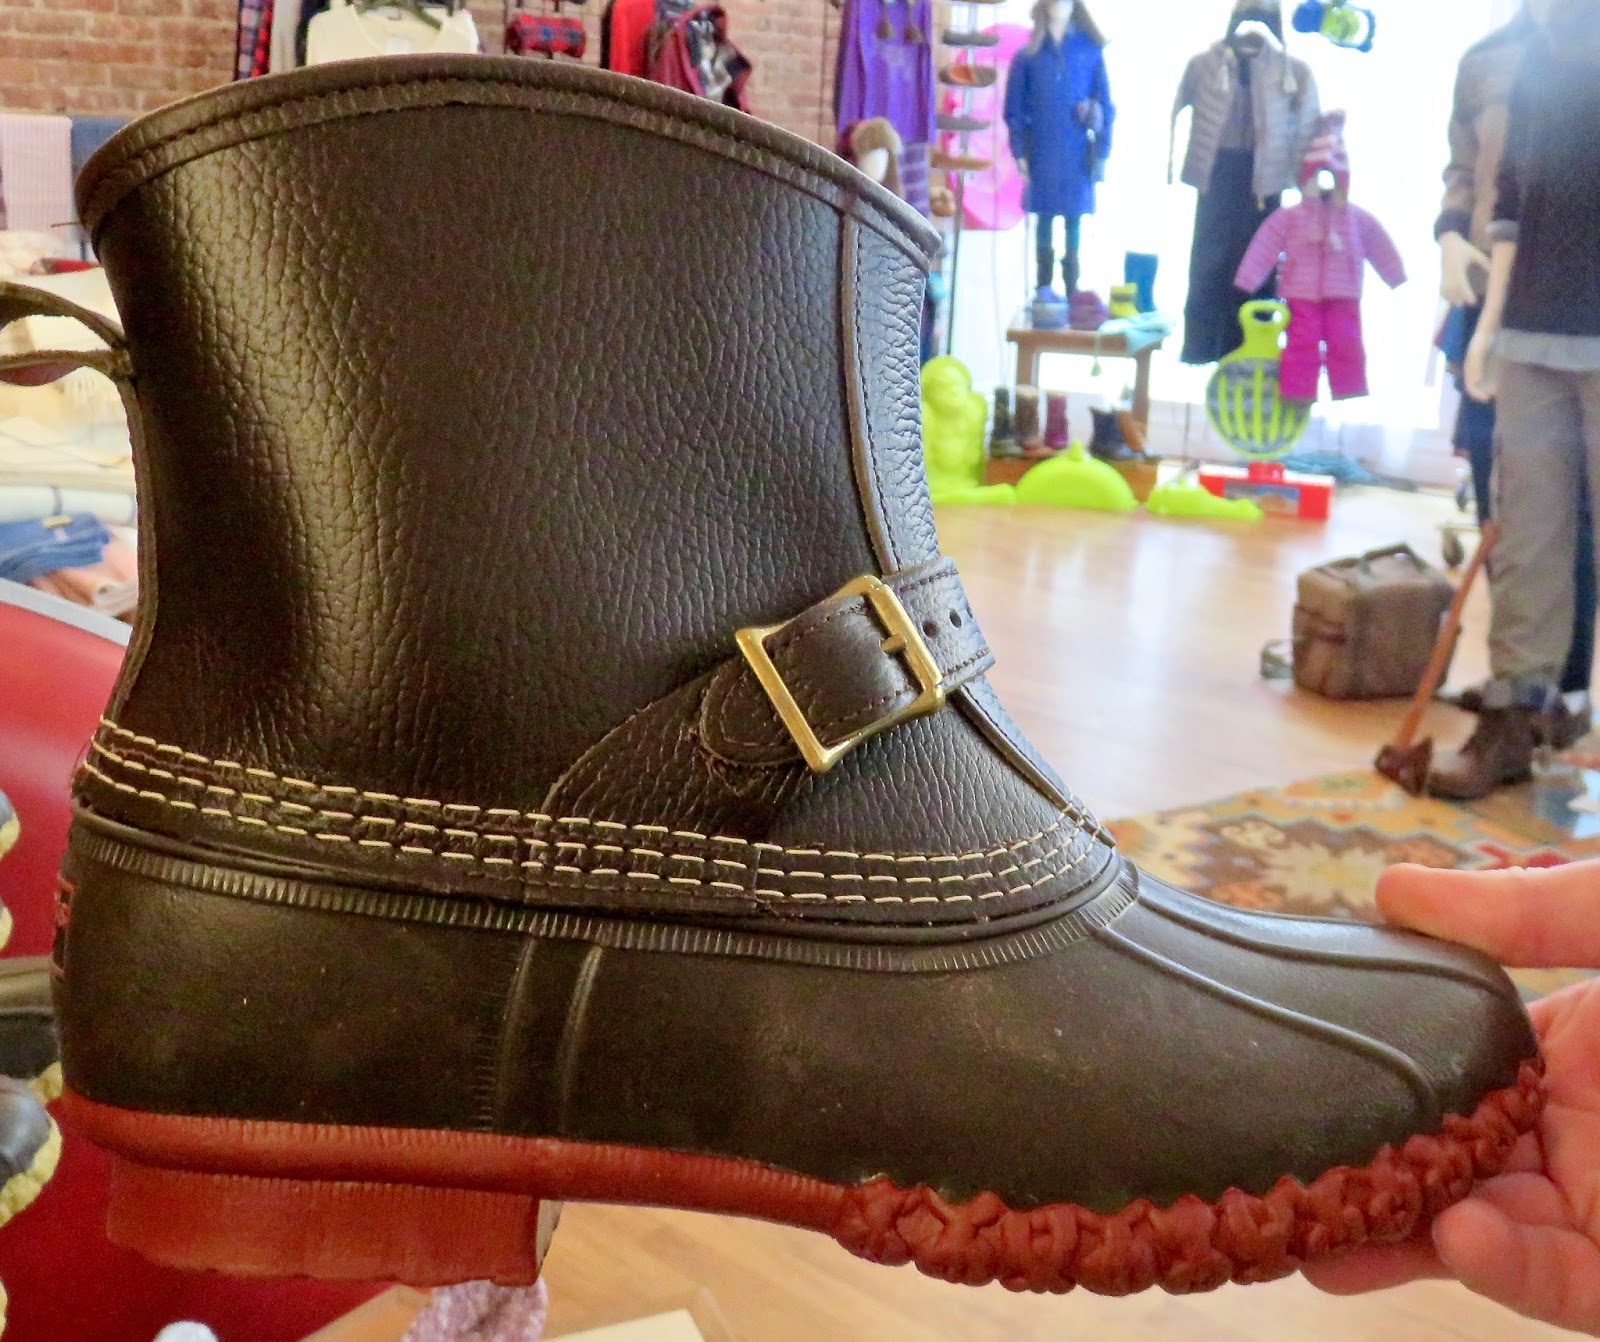 Llbean Original Boots Classics New Styles And Available Espro Napoly Genuine Leather Portofolio Bag Black Now Womens Small Batch Ll Bean With 6 Padded Collar 124 Soft Tumbled Full Grain Upper Foam For